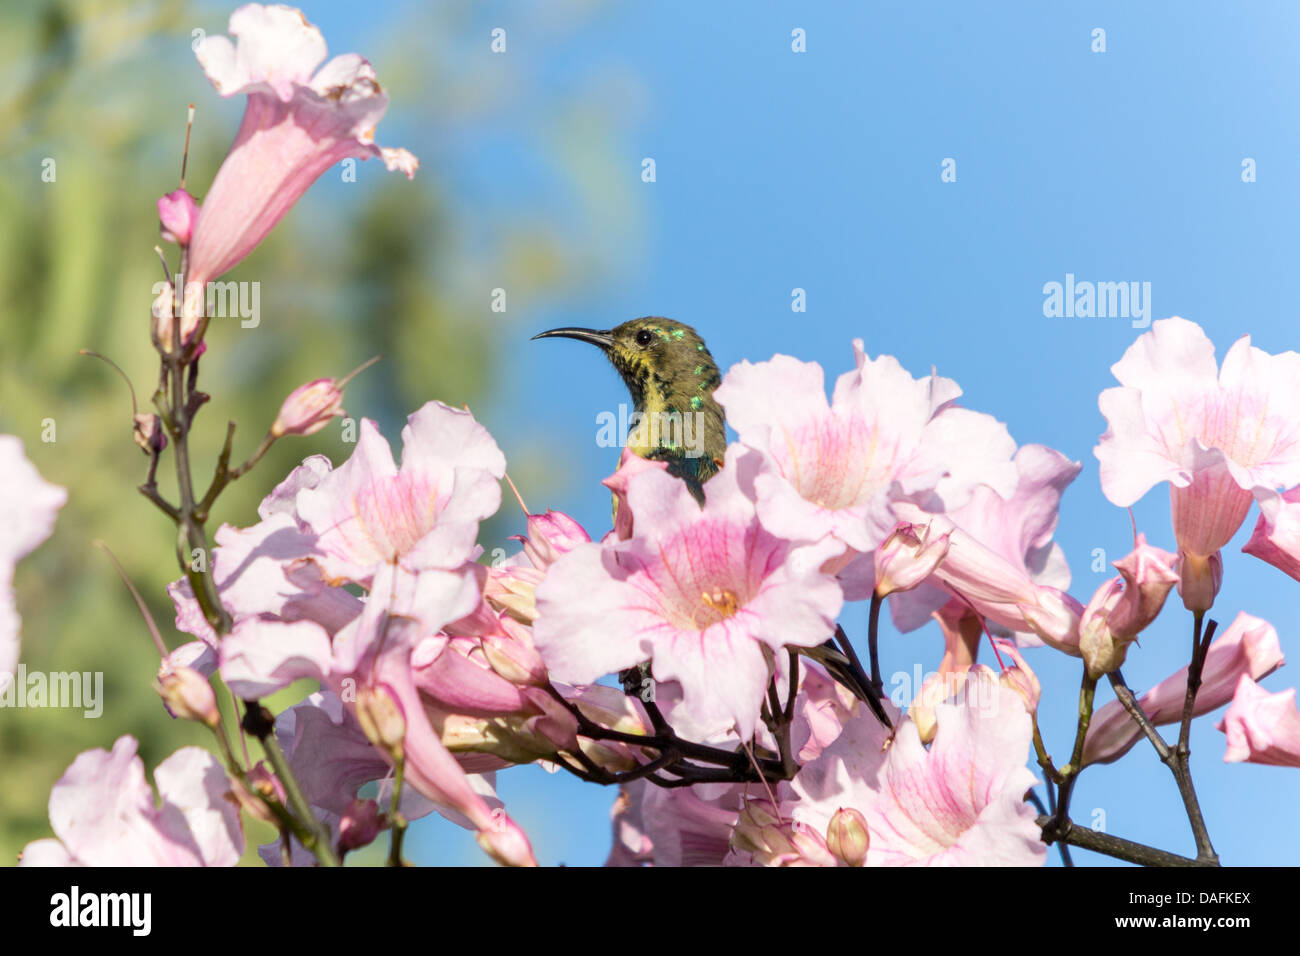 A beautiful small bird sitting on a twig filled with blooming flowers - Stock Image